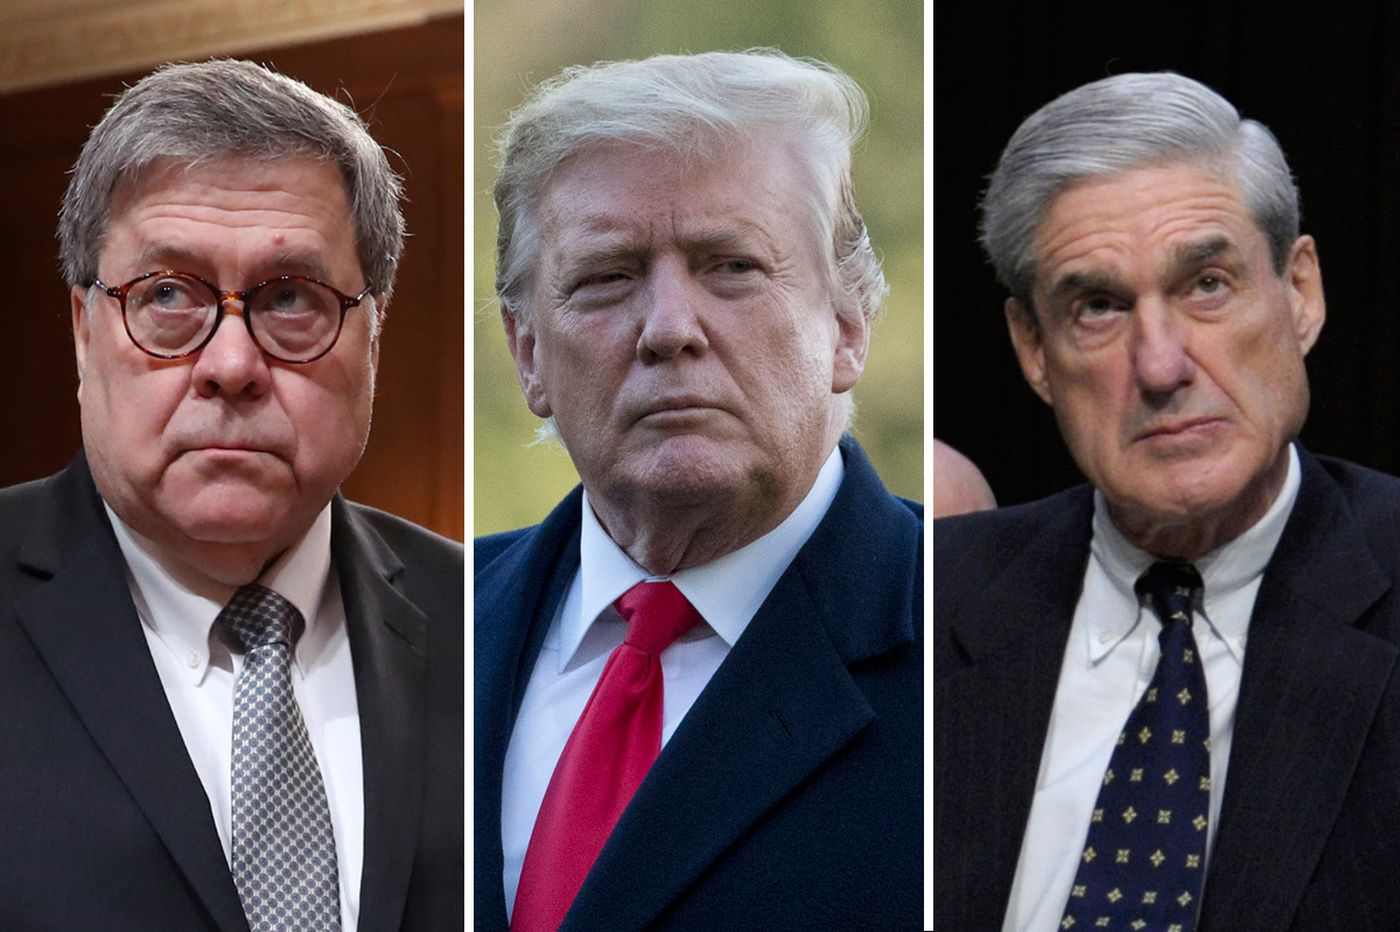 Mueller report released: Recap of findings and reactions to special counsel's investigation